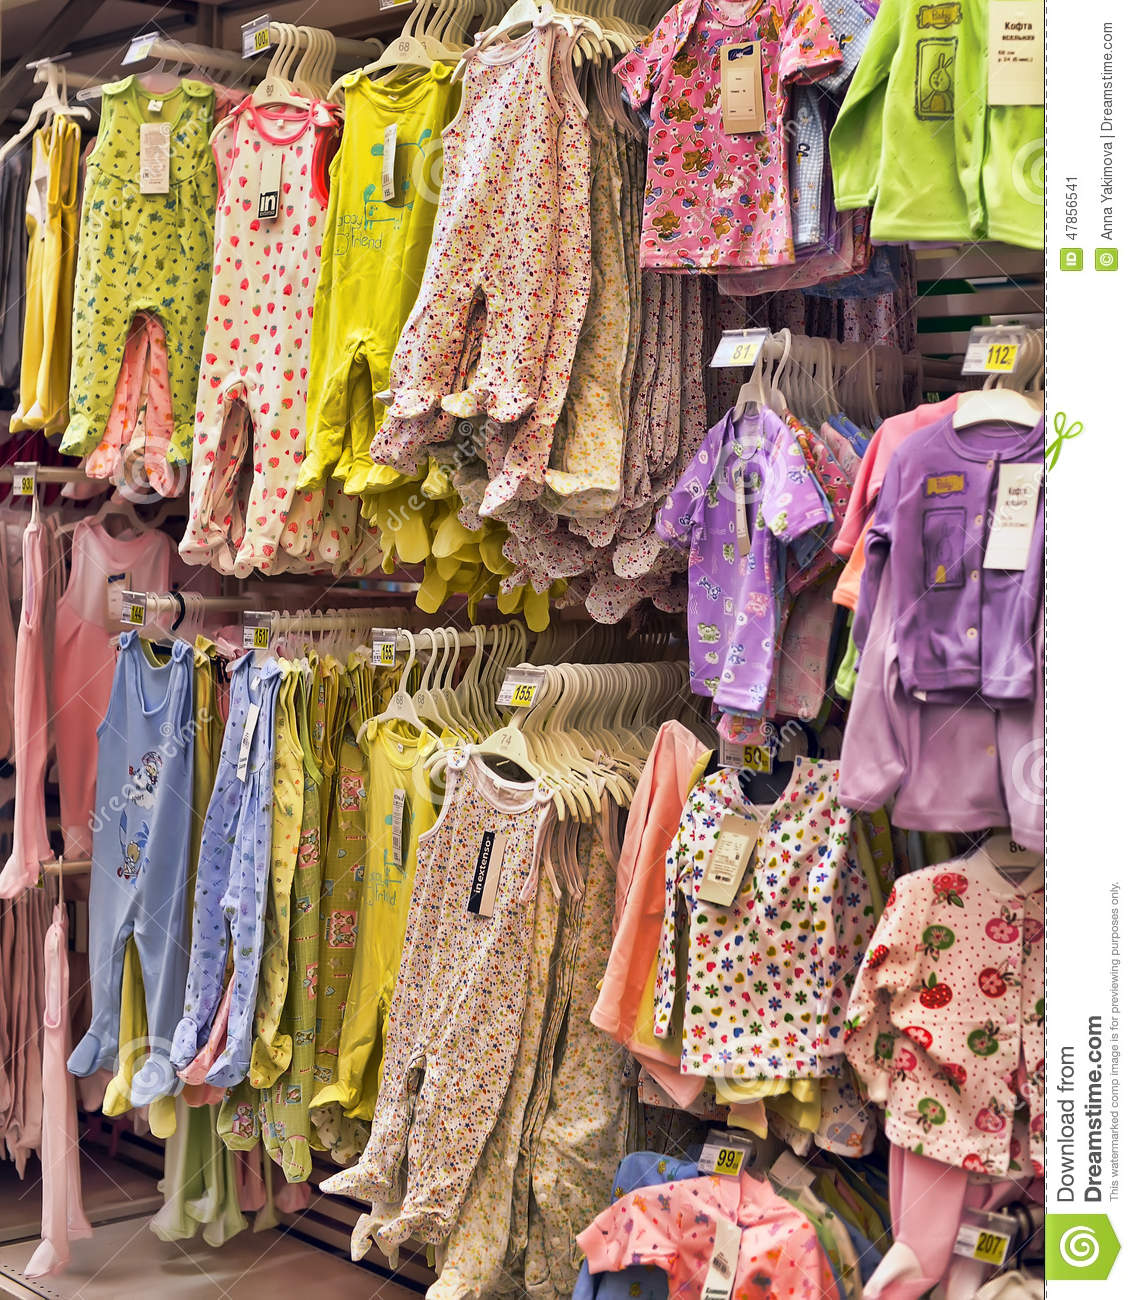 We also accept new or gently used children's clothing and we pay top dollar, other